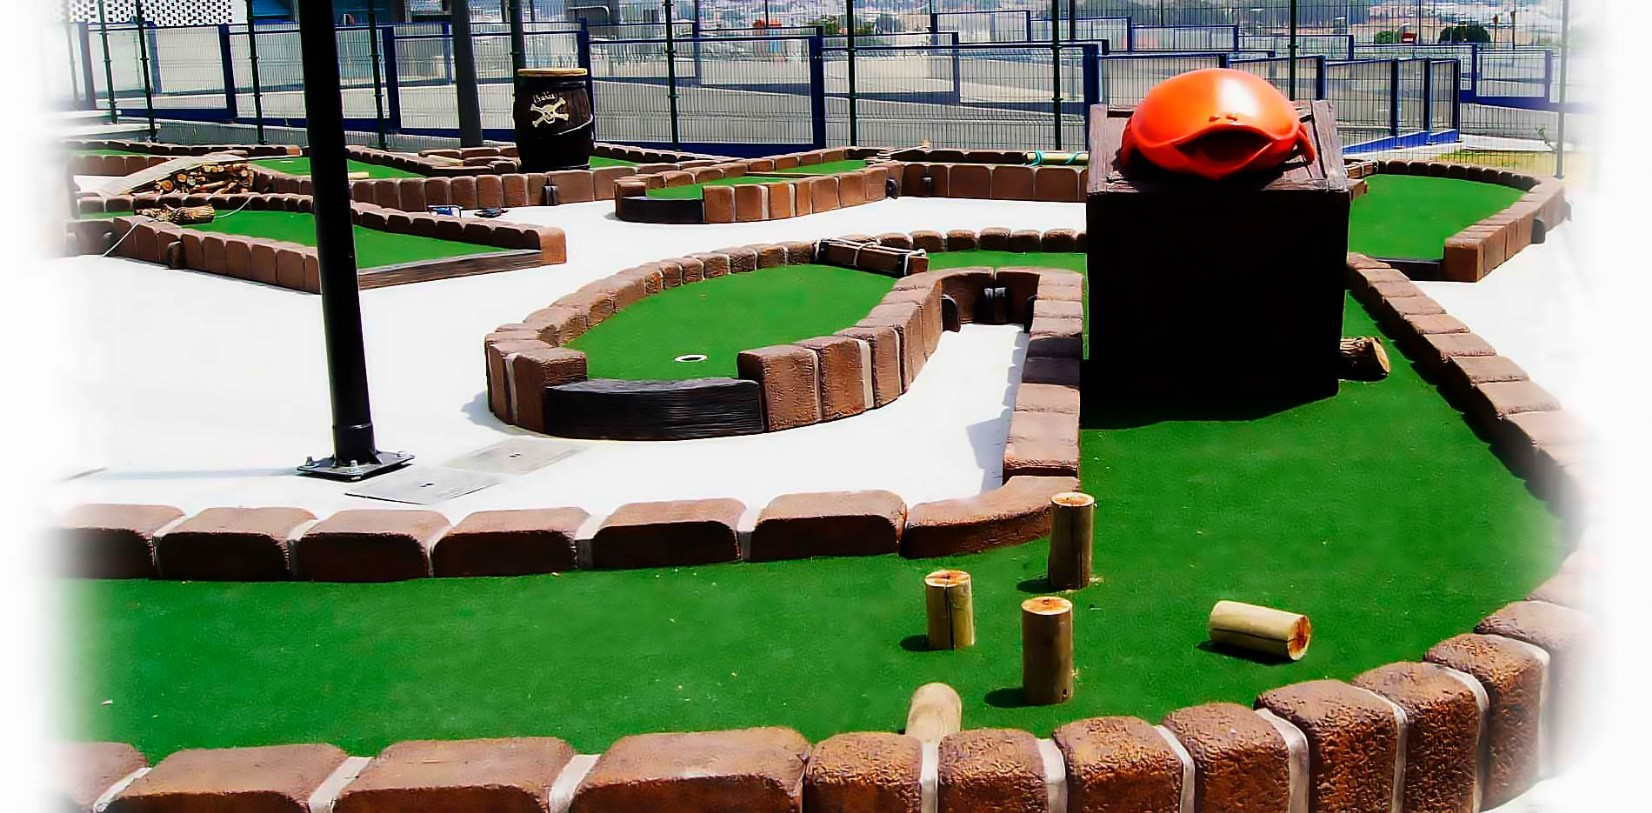 fabricante de hoyos mini golf